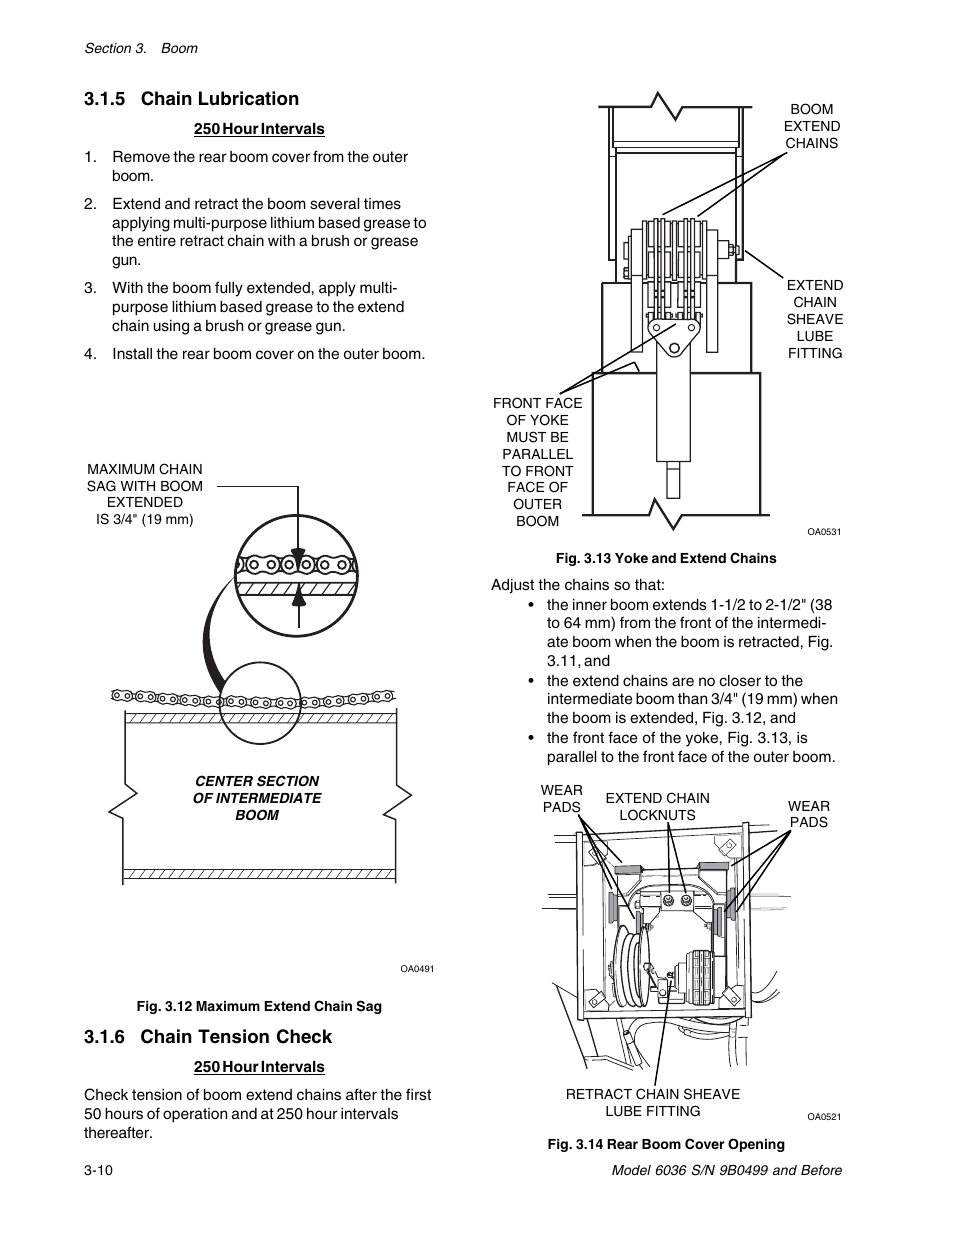 hight resolution of 5 chain lubrication 6 chain tension check skytrak 6036 service manual user manual page 28 280